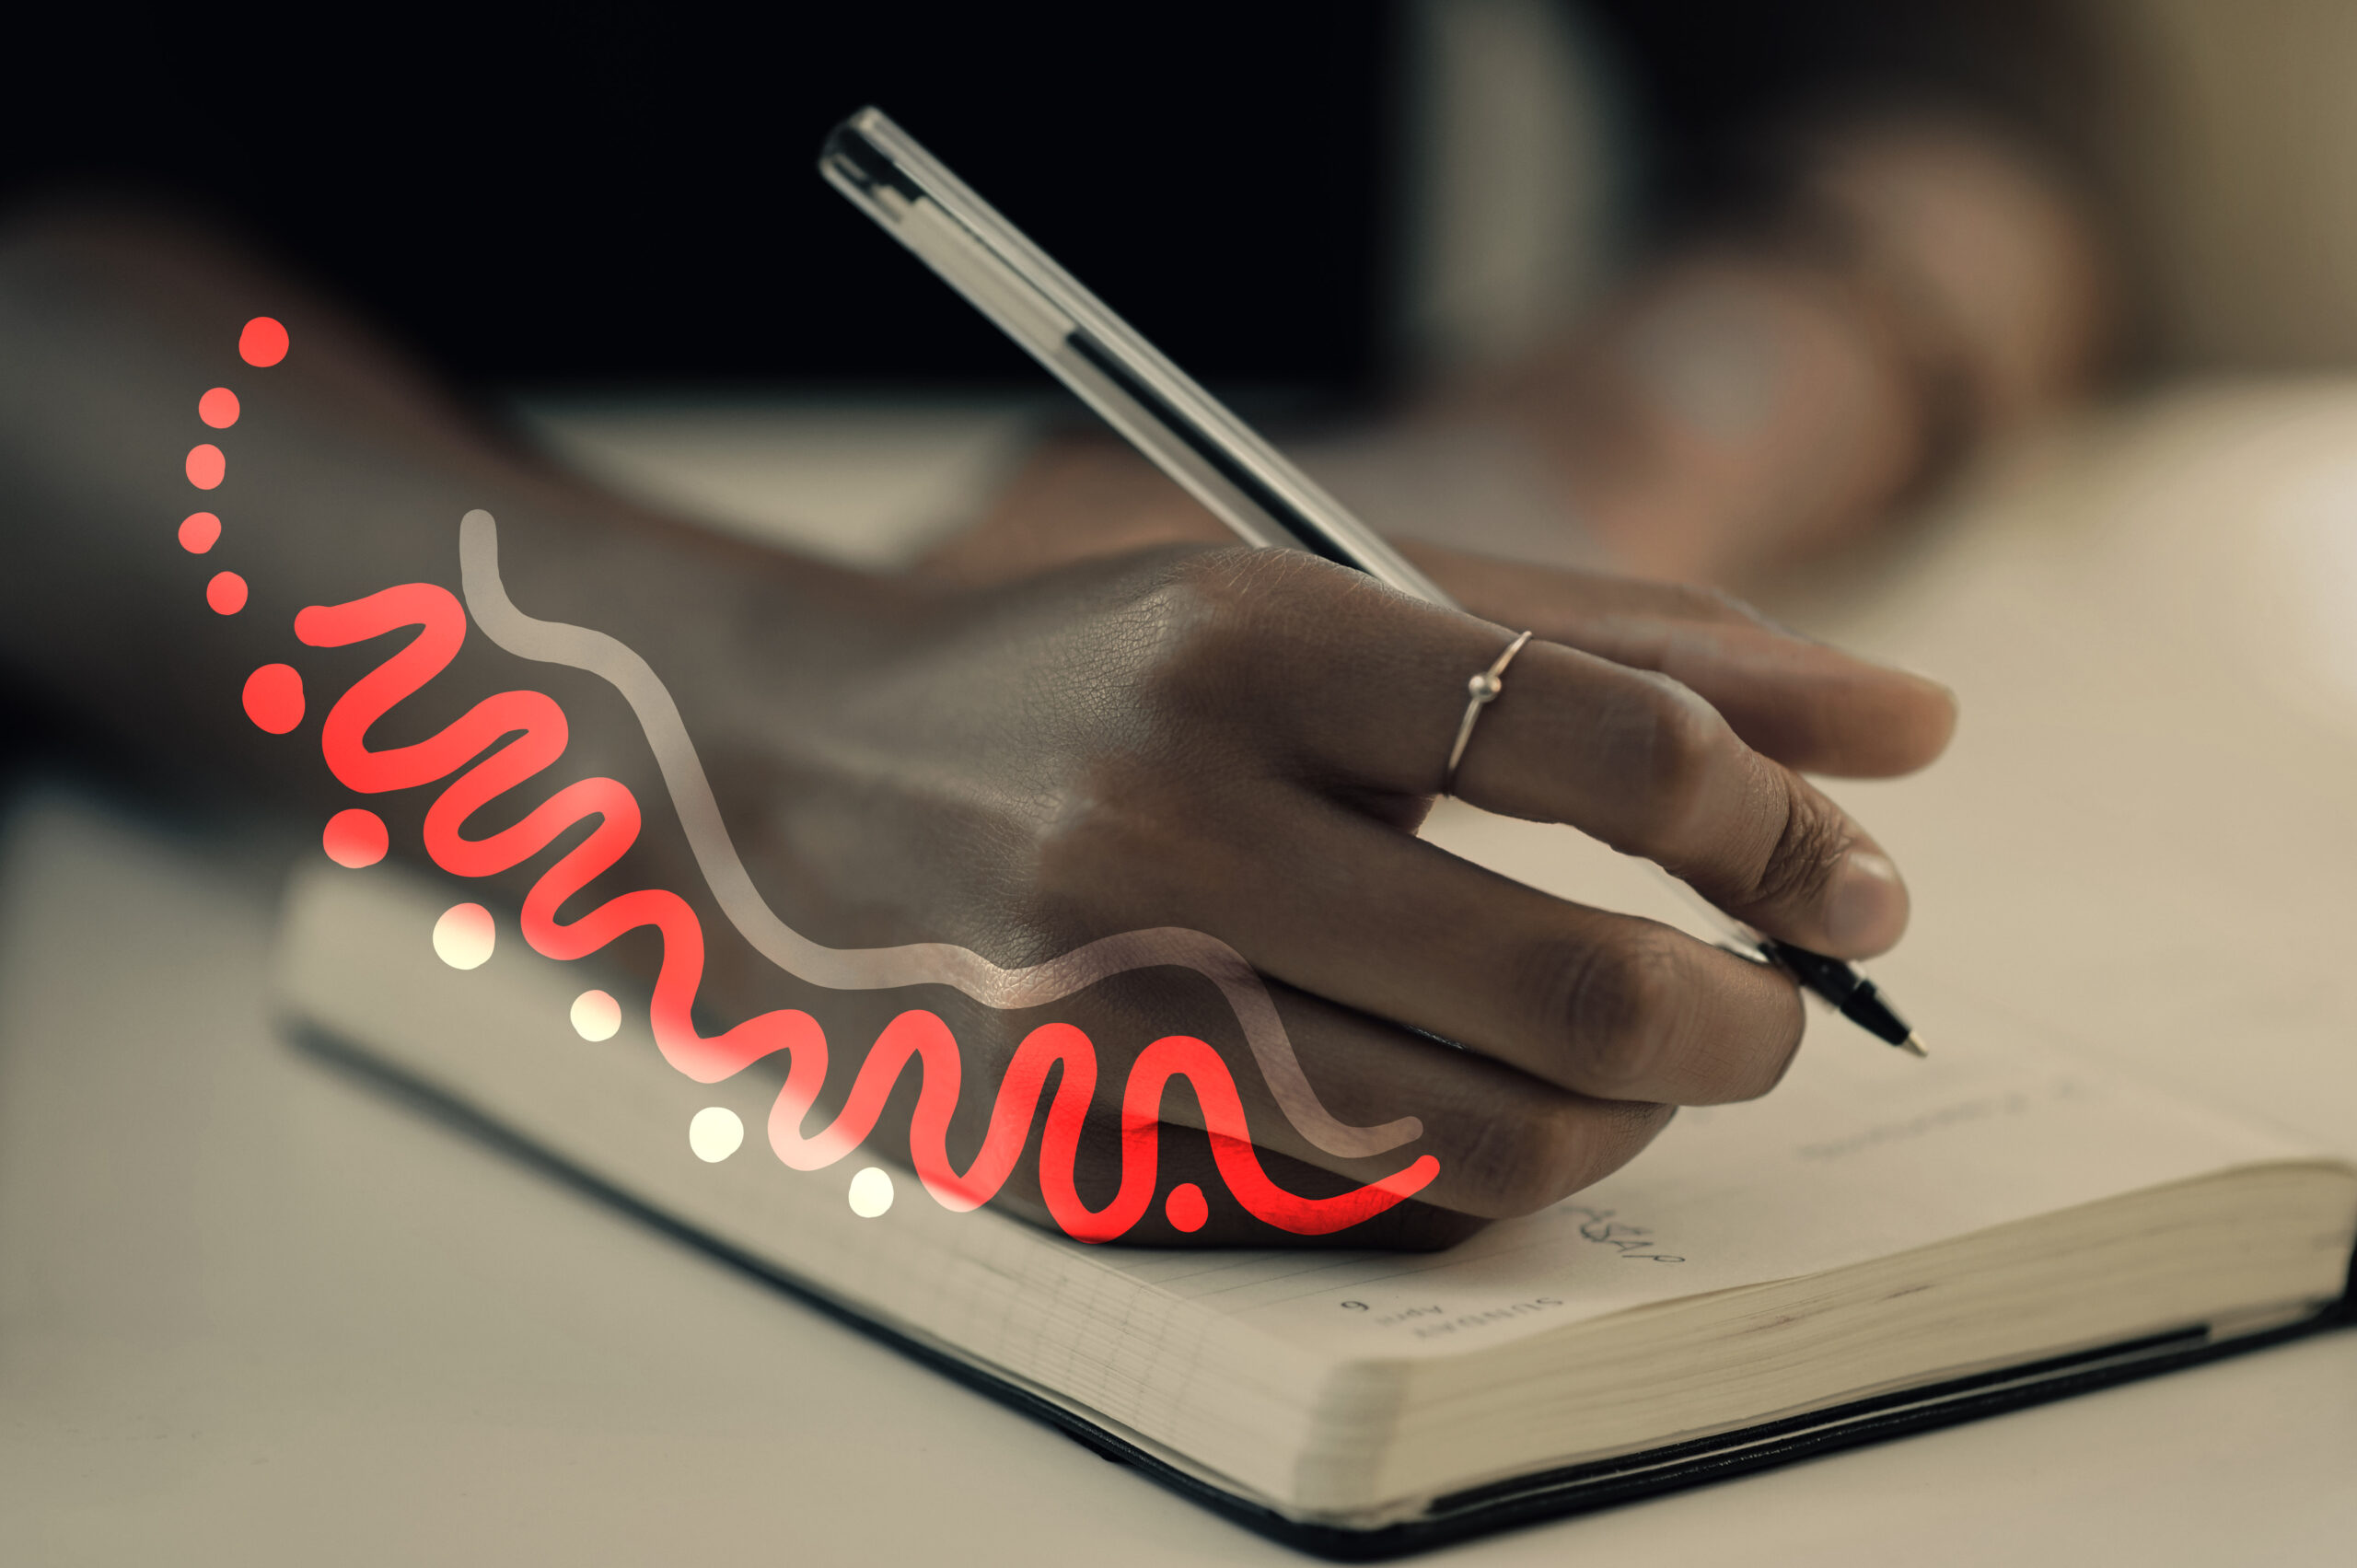 reduce worry and anxiety by journaling your feelings